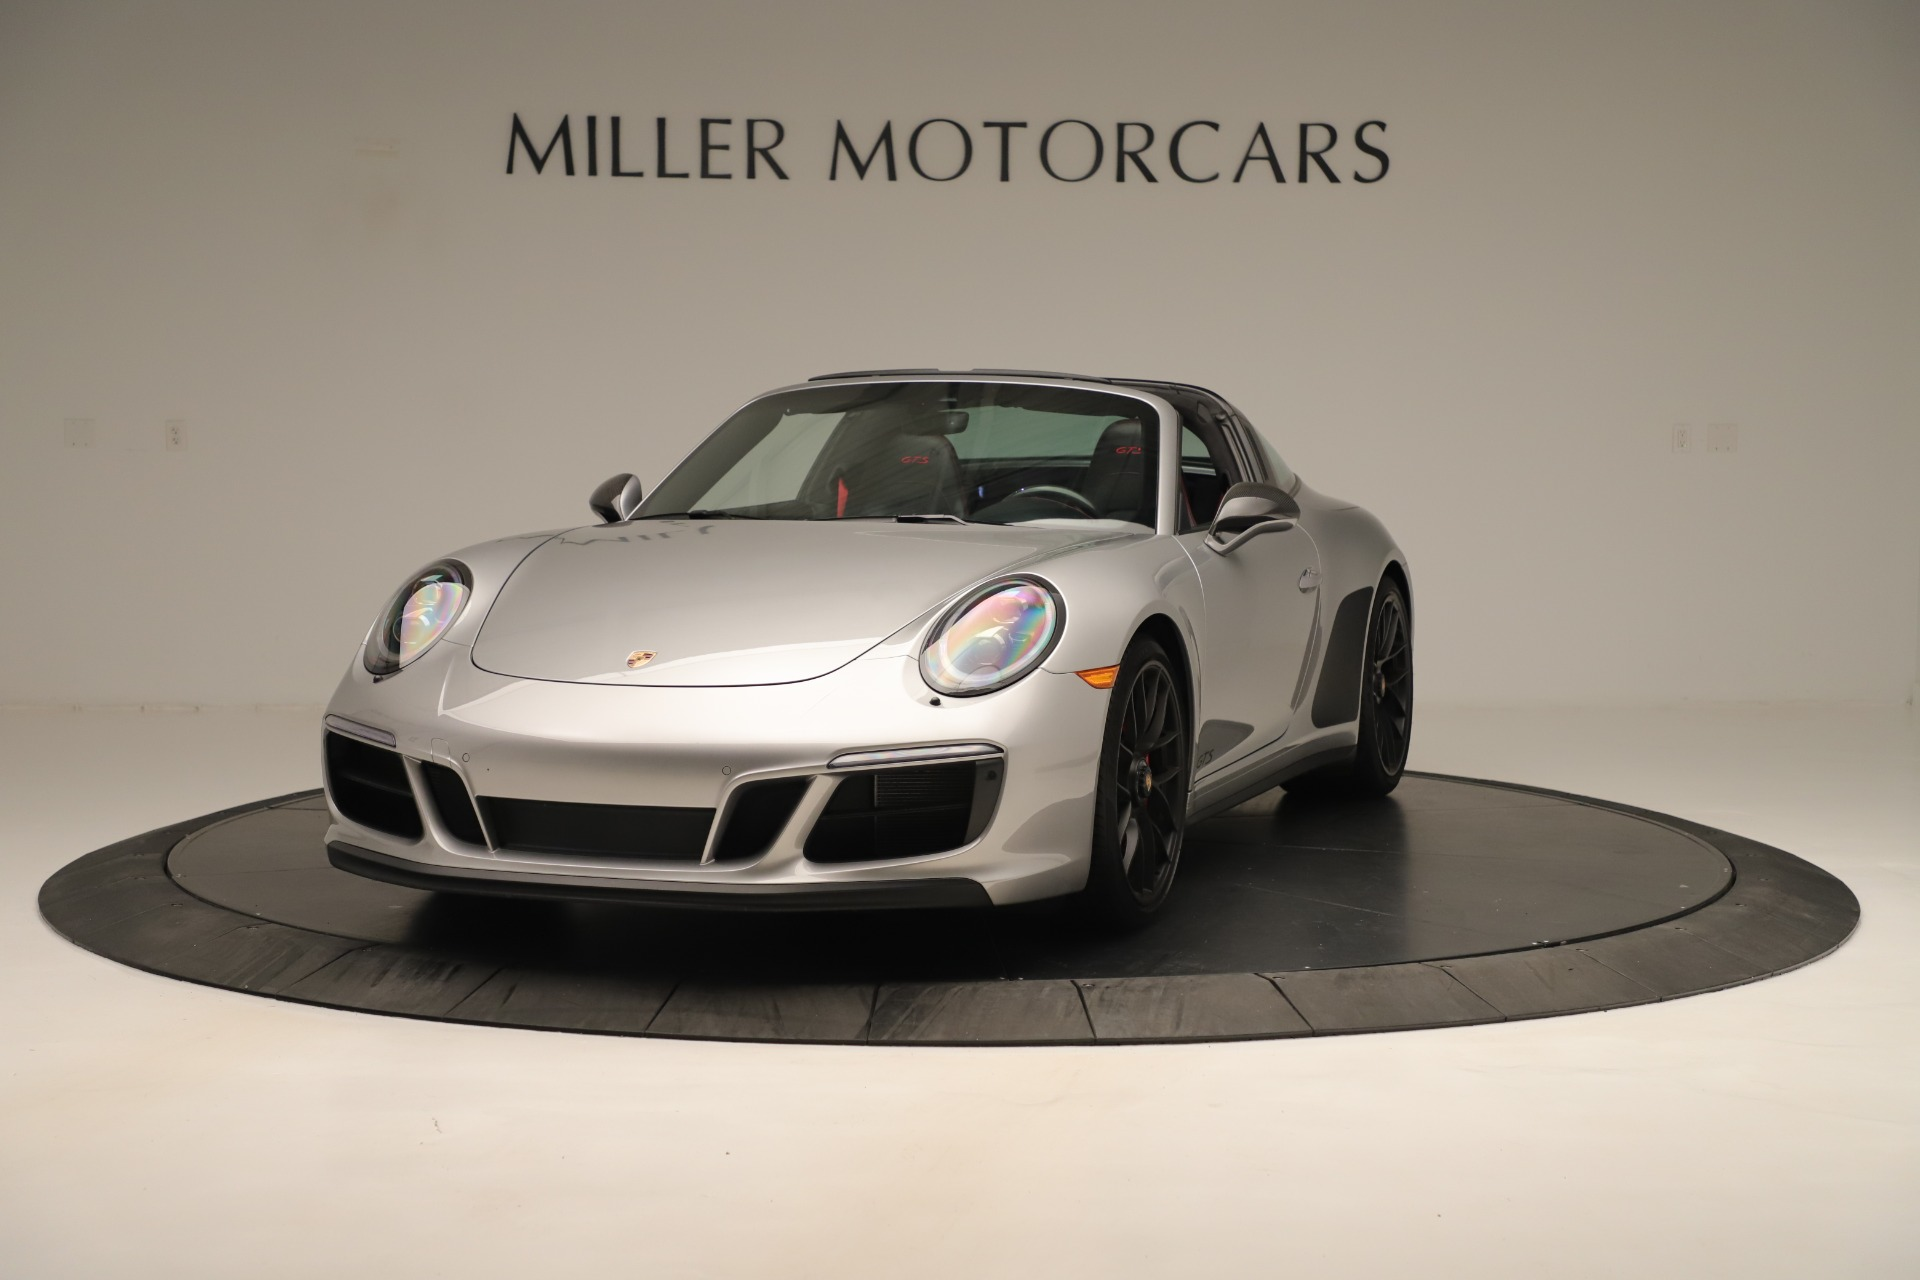 Used 2017 Porsche 911 Targa 4 GTS for sale Sold at Rolls-Royce Motor Cars Greenwich in Greenwich CT 06830 1